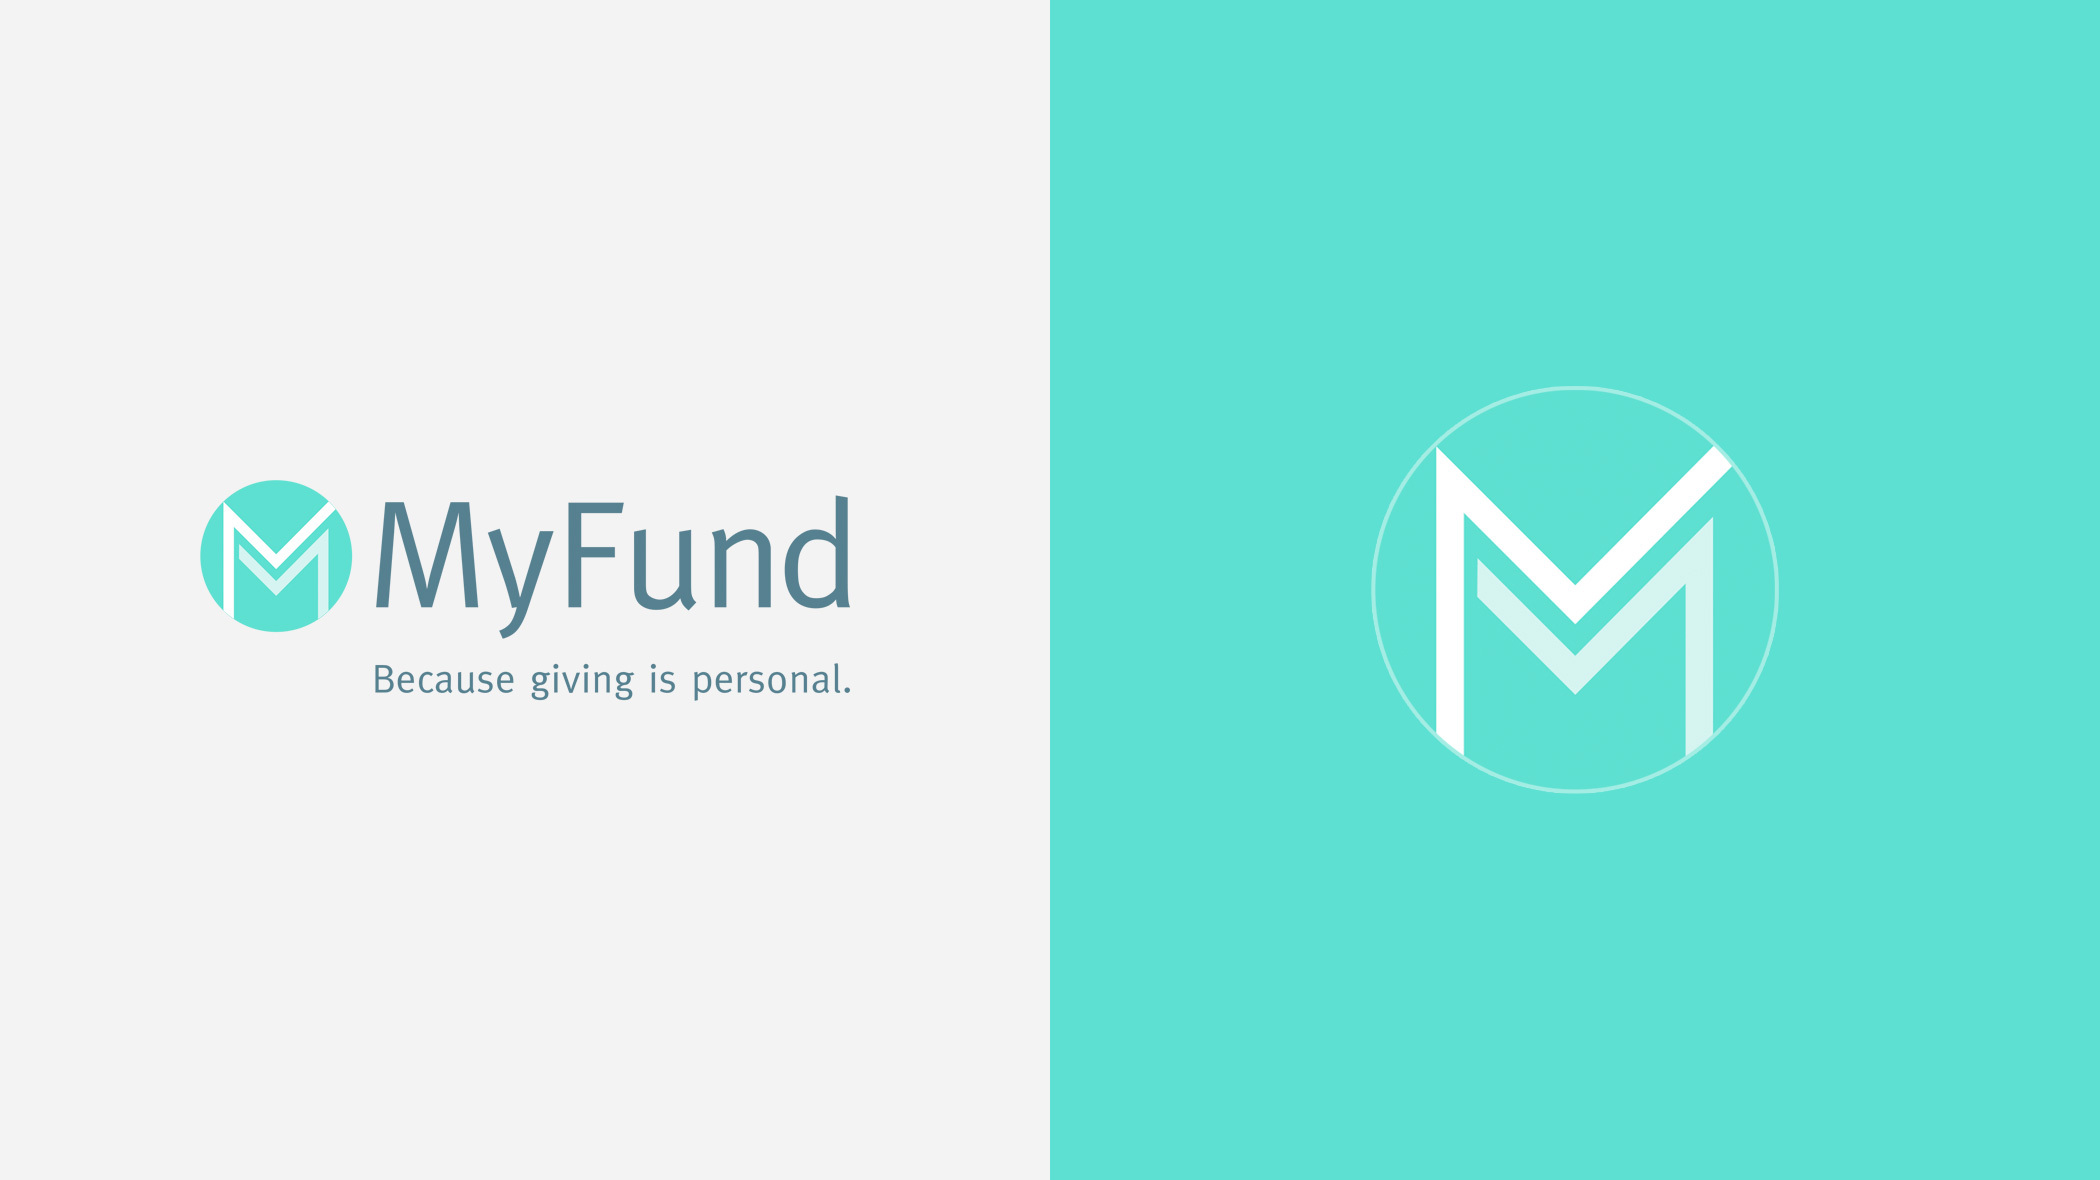 The MyFund logo with name and as a stand-alone icon